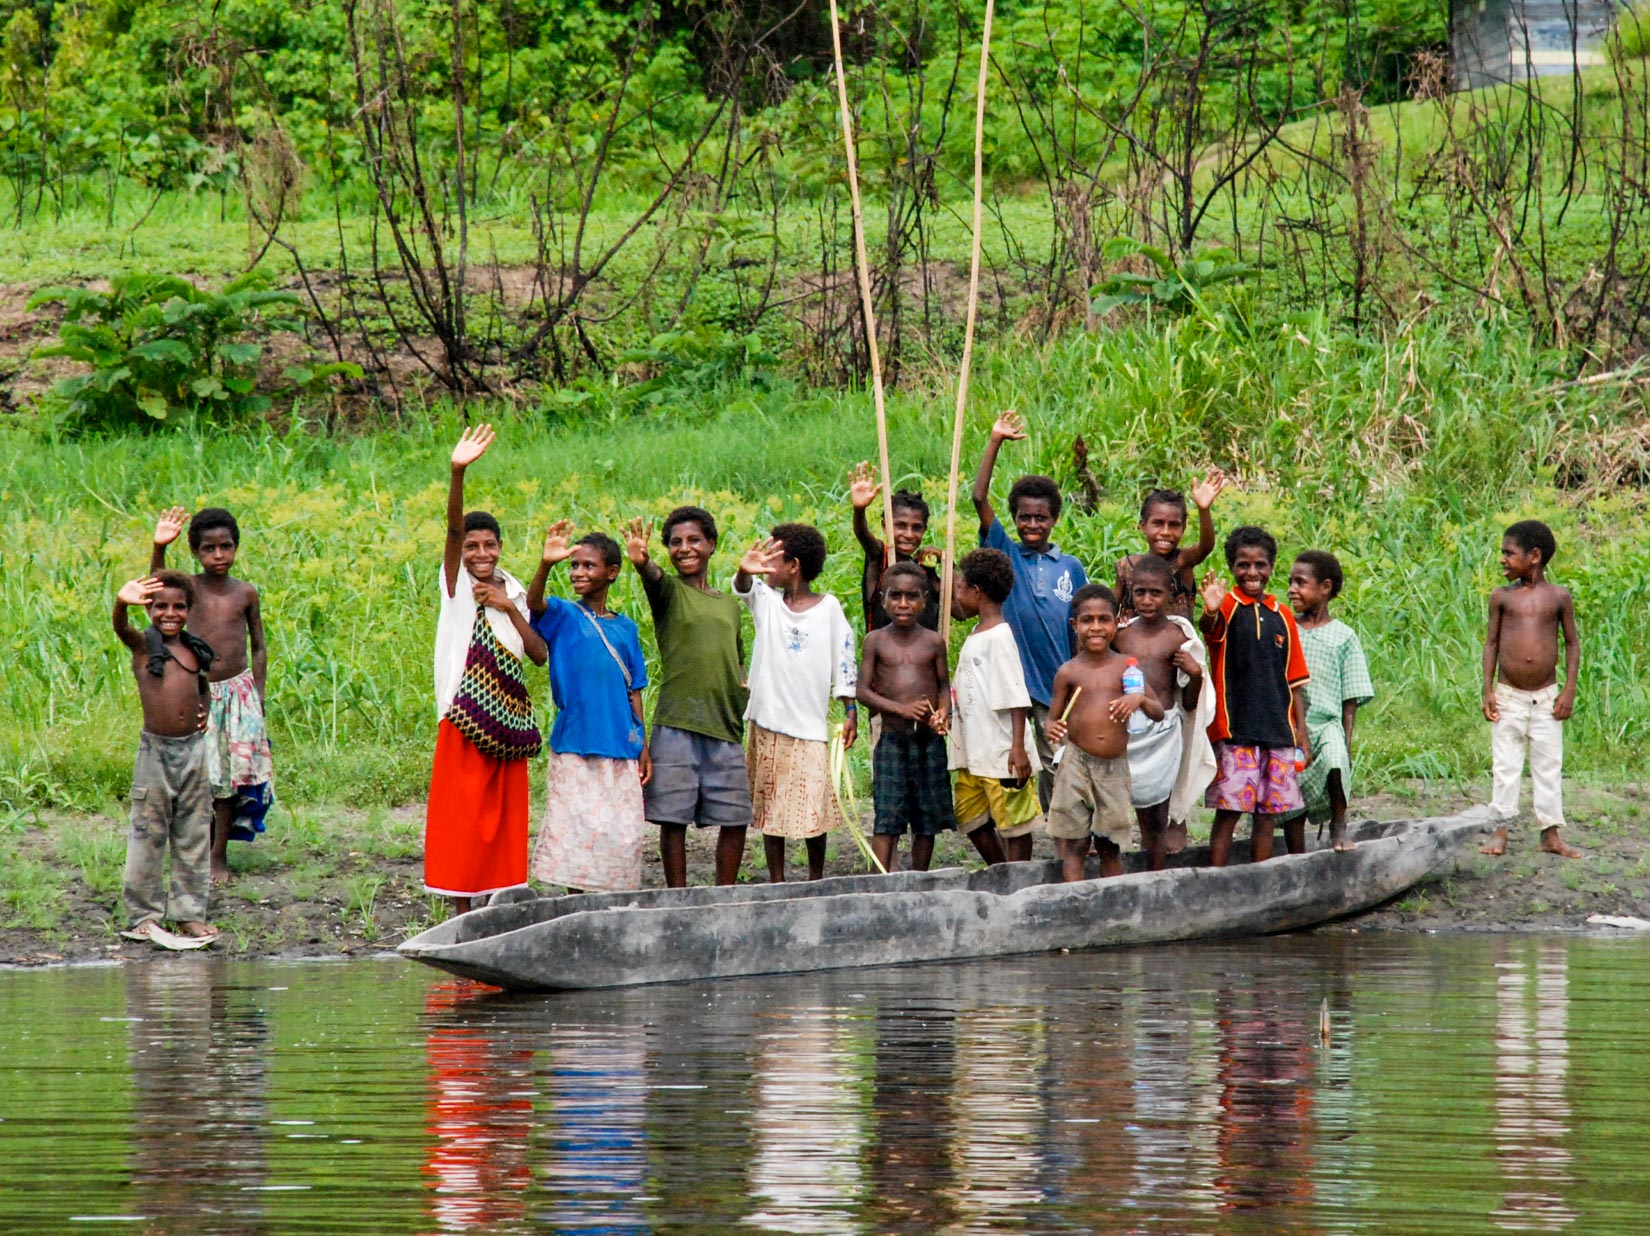 Group of children waves from the bank of a river